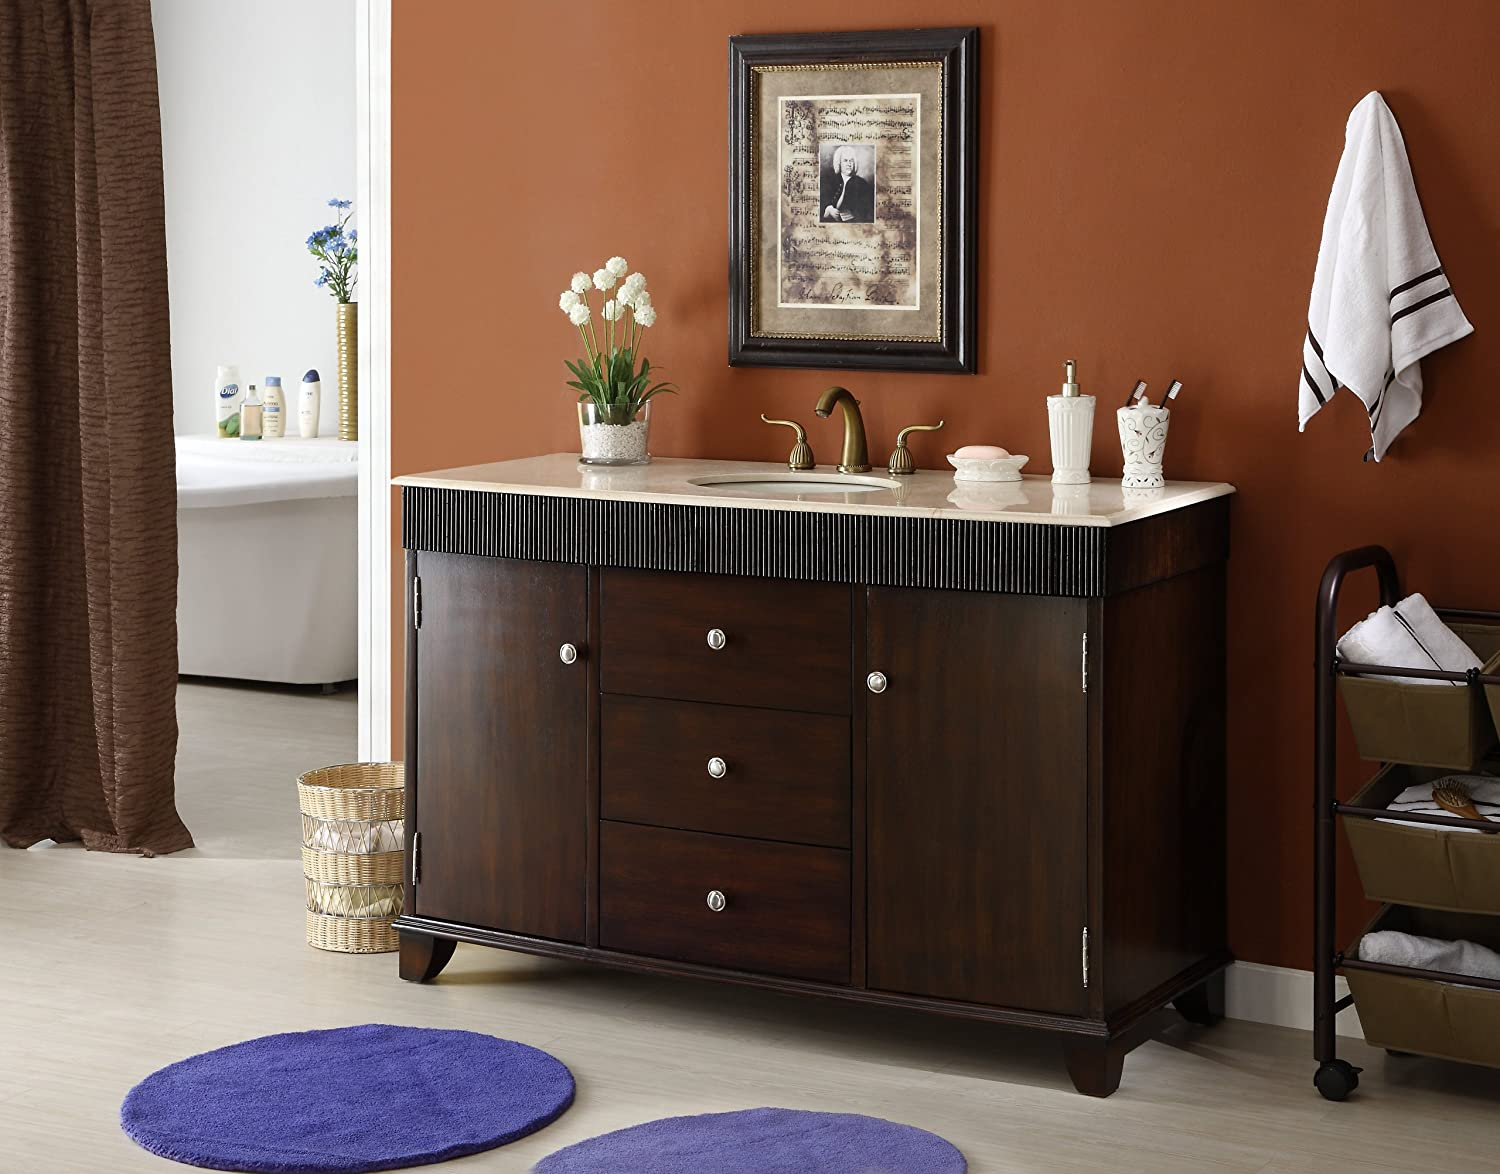 vanity modern org sink cabinet single inch viewfindersclub double walnut bathroom